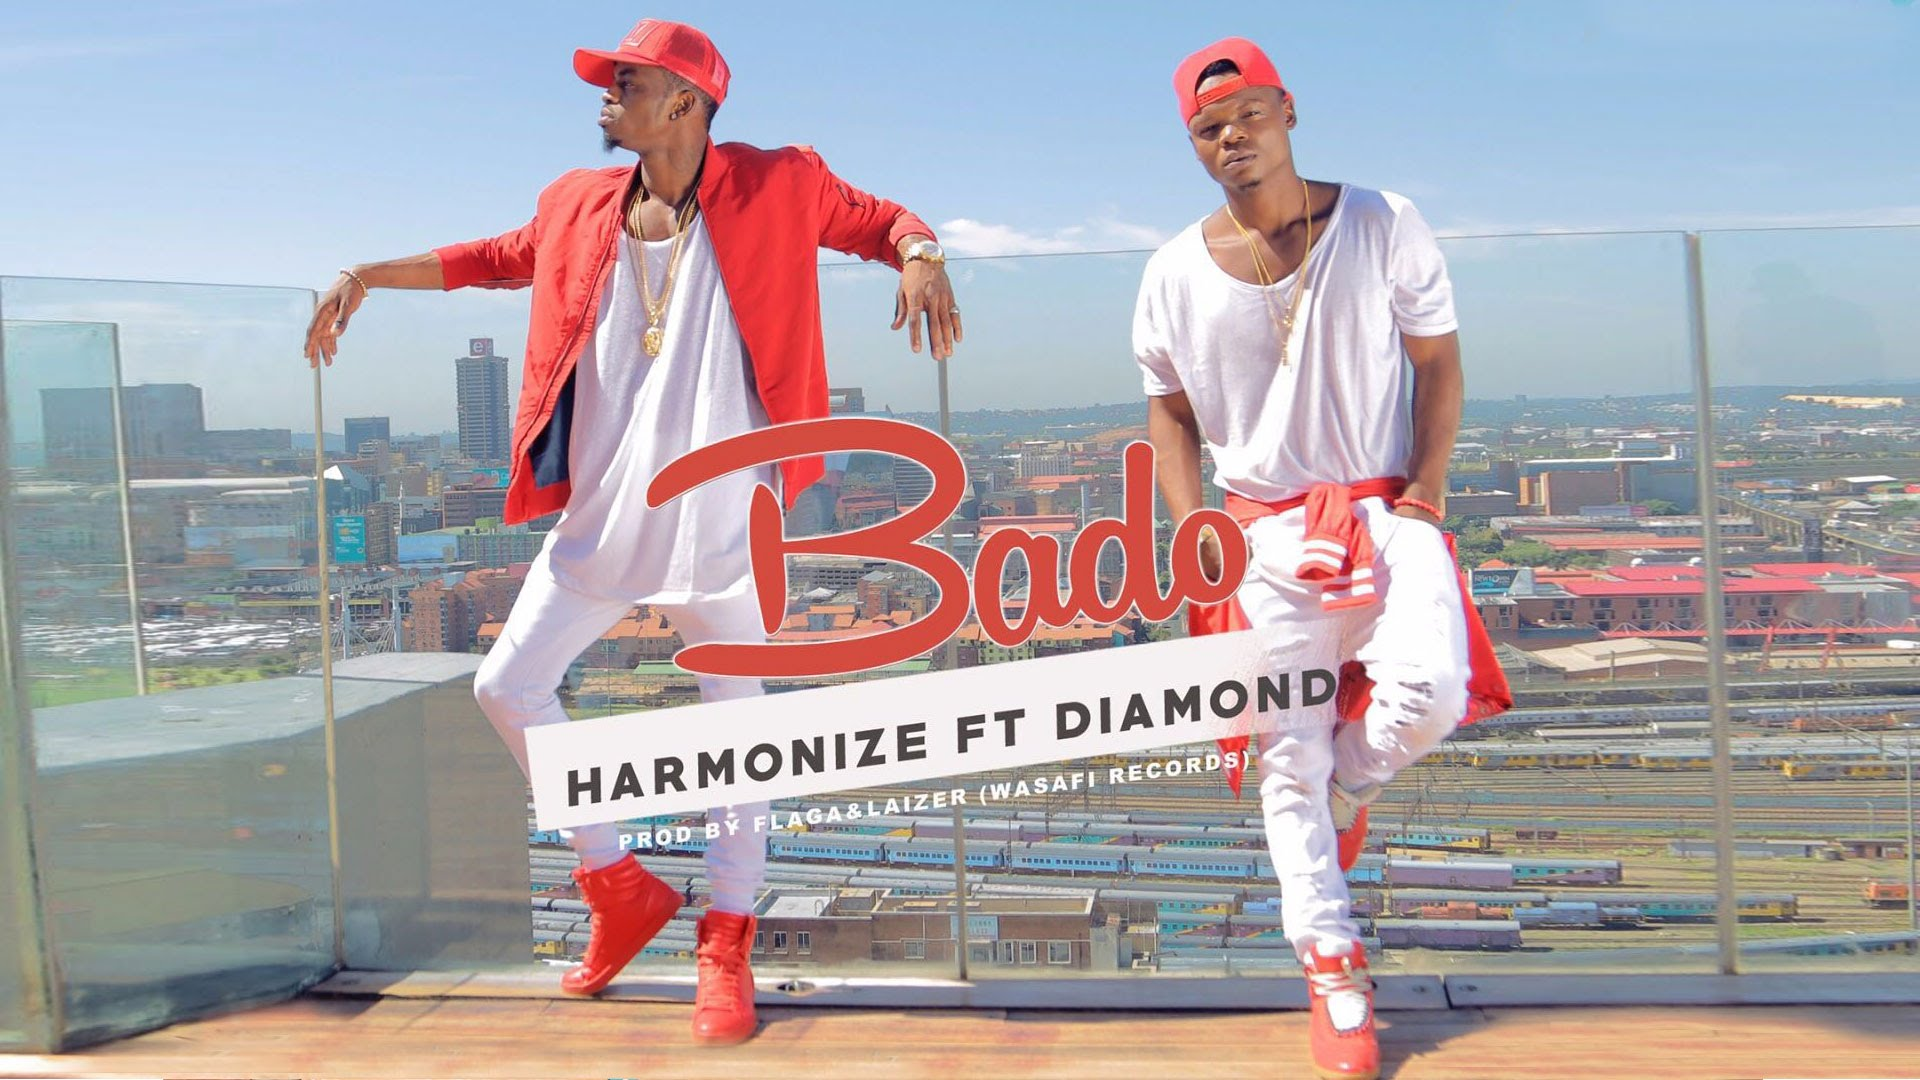 Harmonize Diamond Bado Art